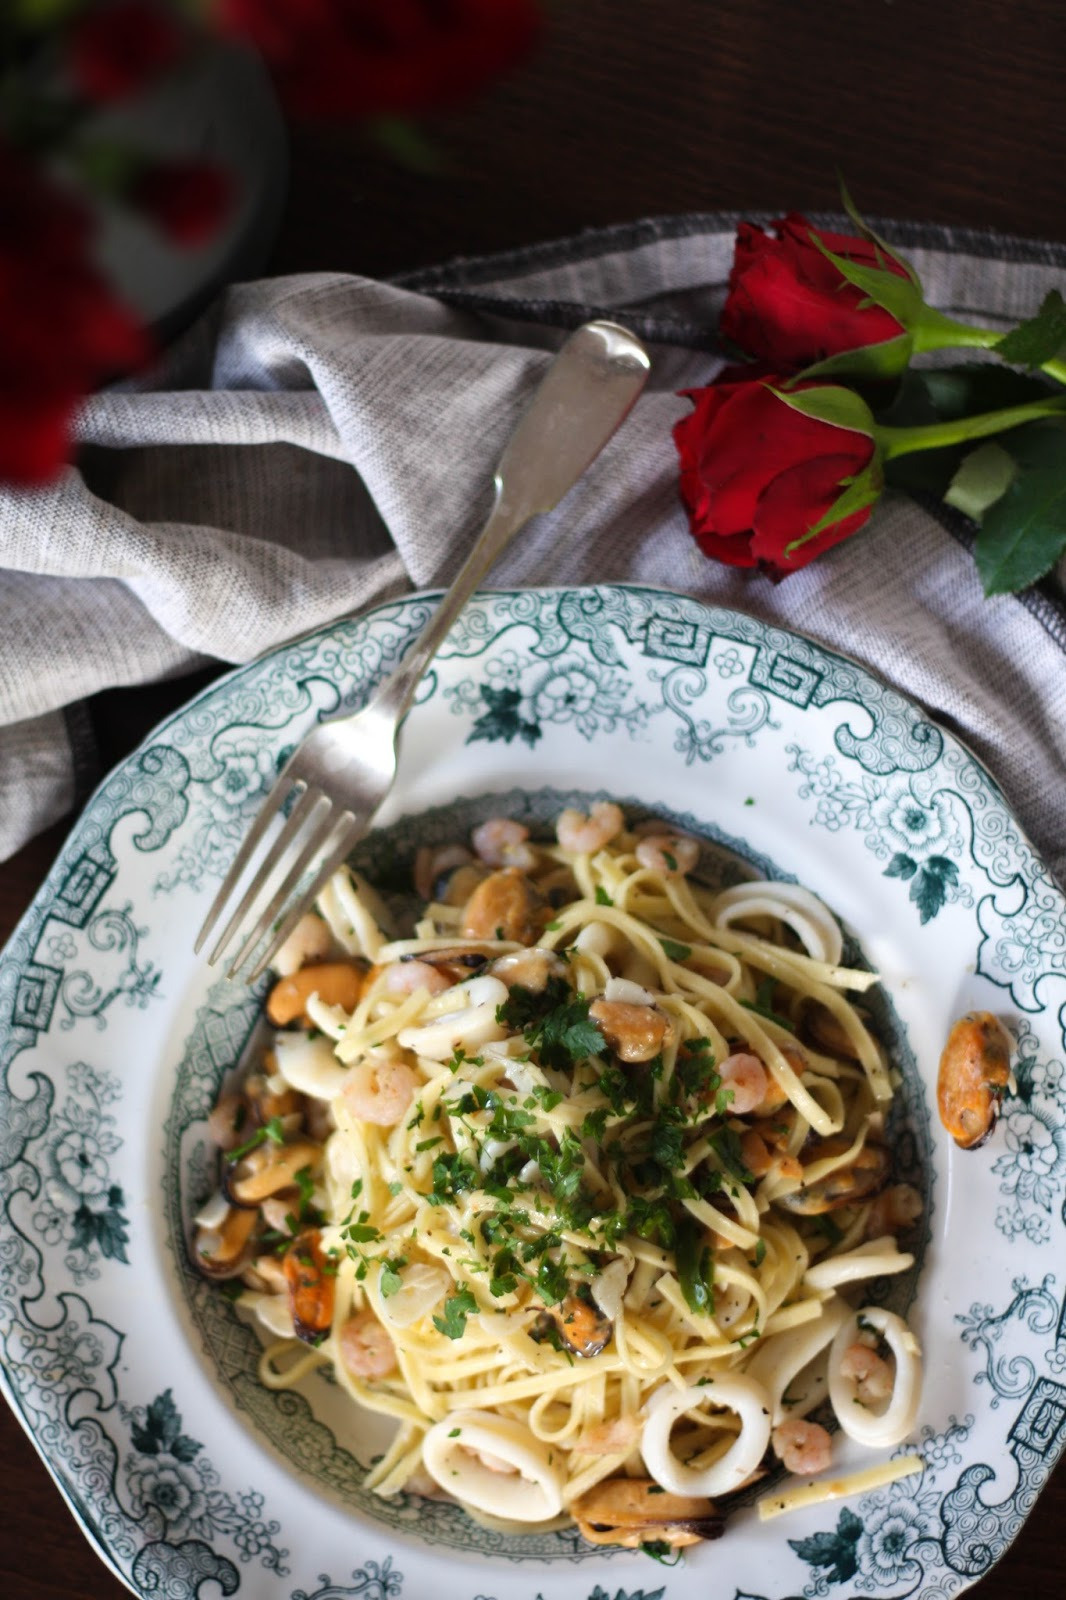 Valentine's Day menu: Delicious seafood tagliatelle recipe